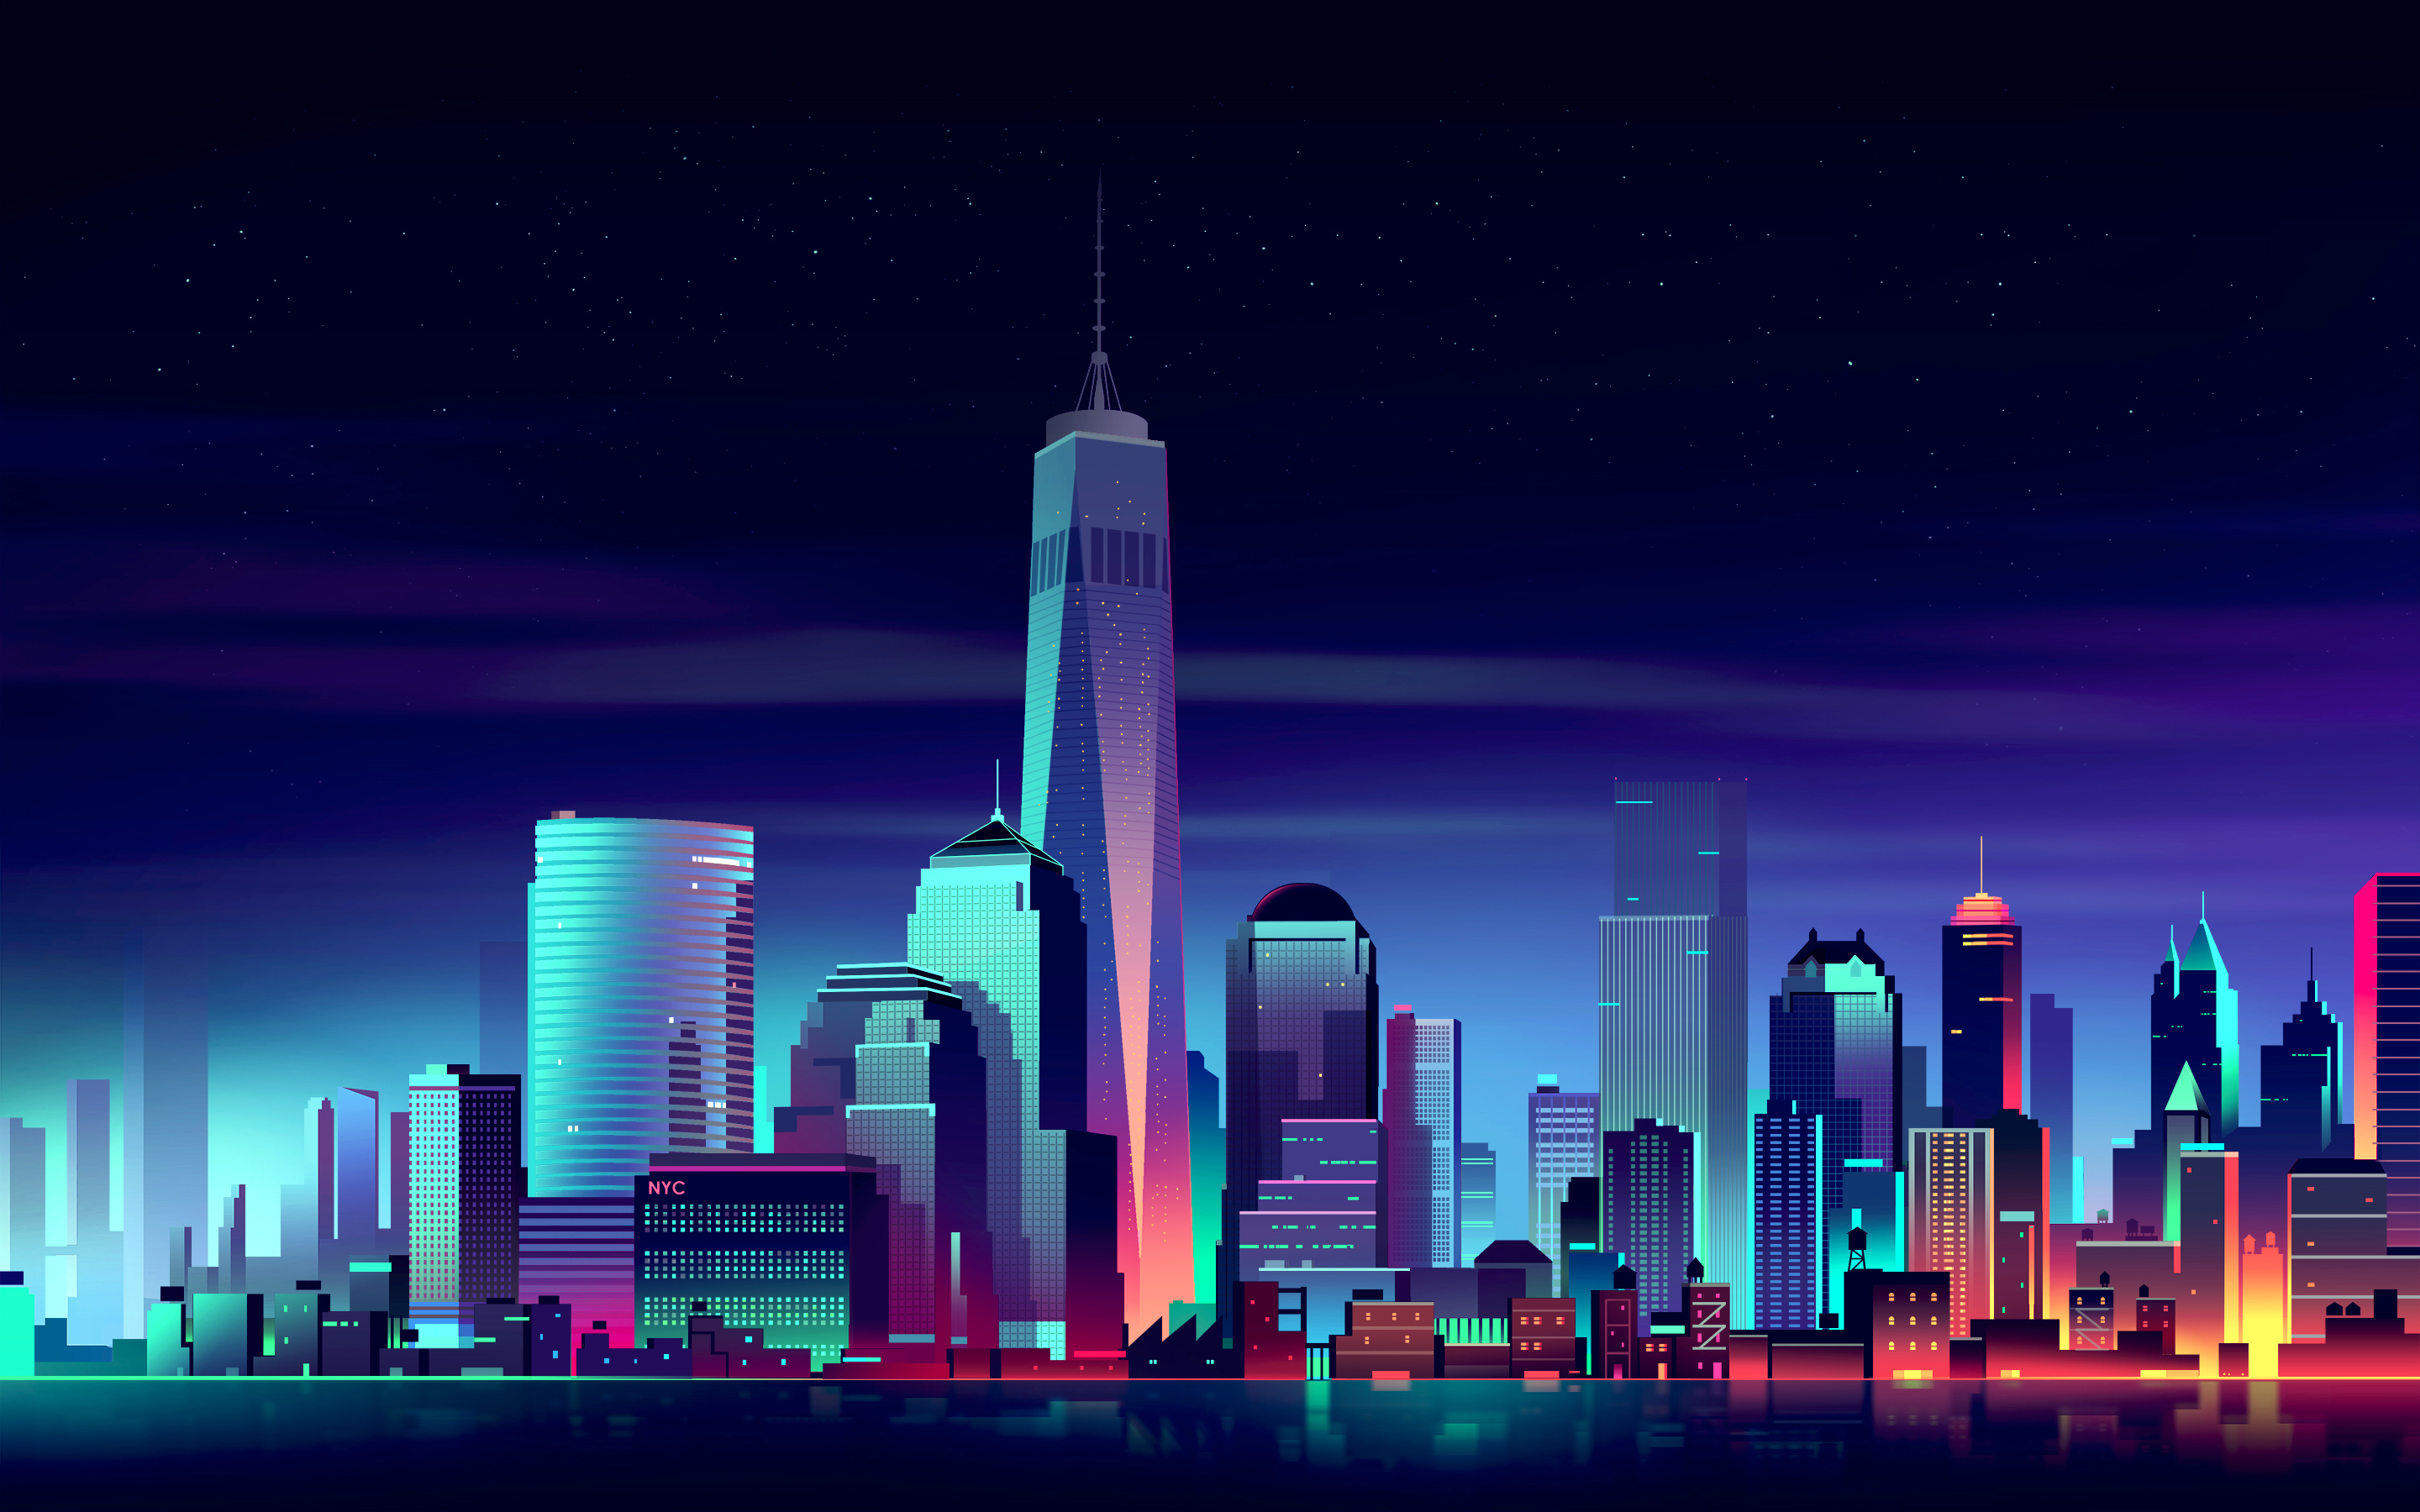 Neon City Wallpapers Top Free Neon City Backgrounds Wallpaperaccess